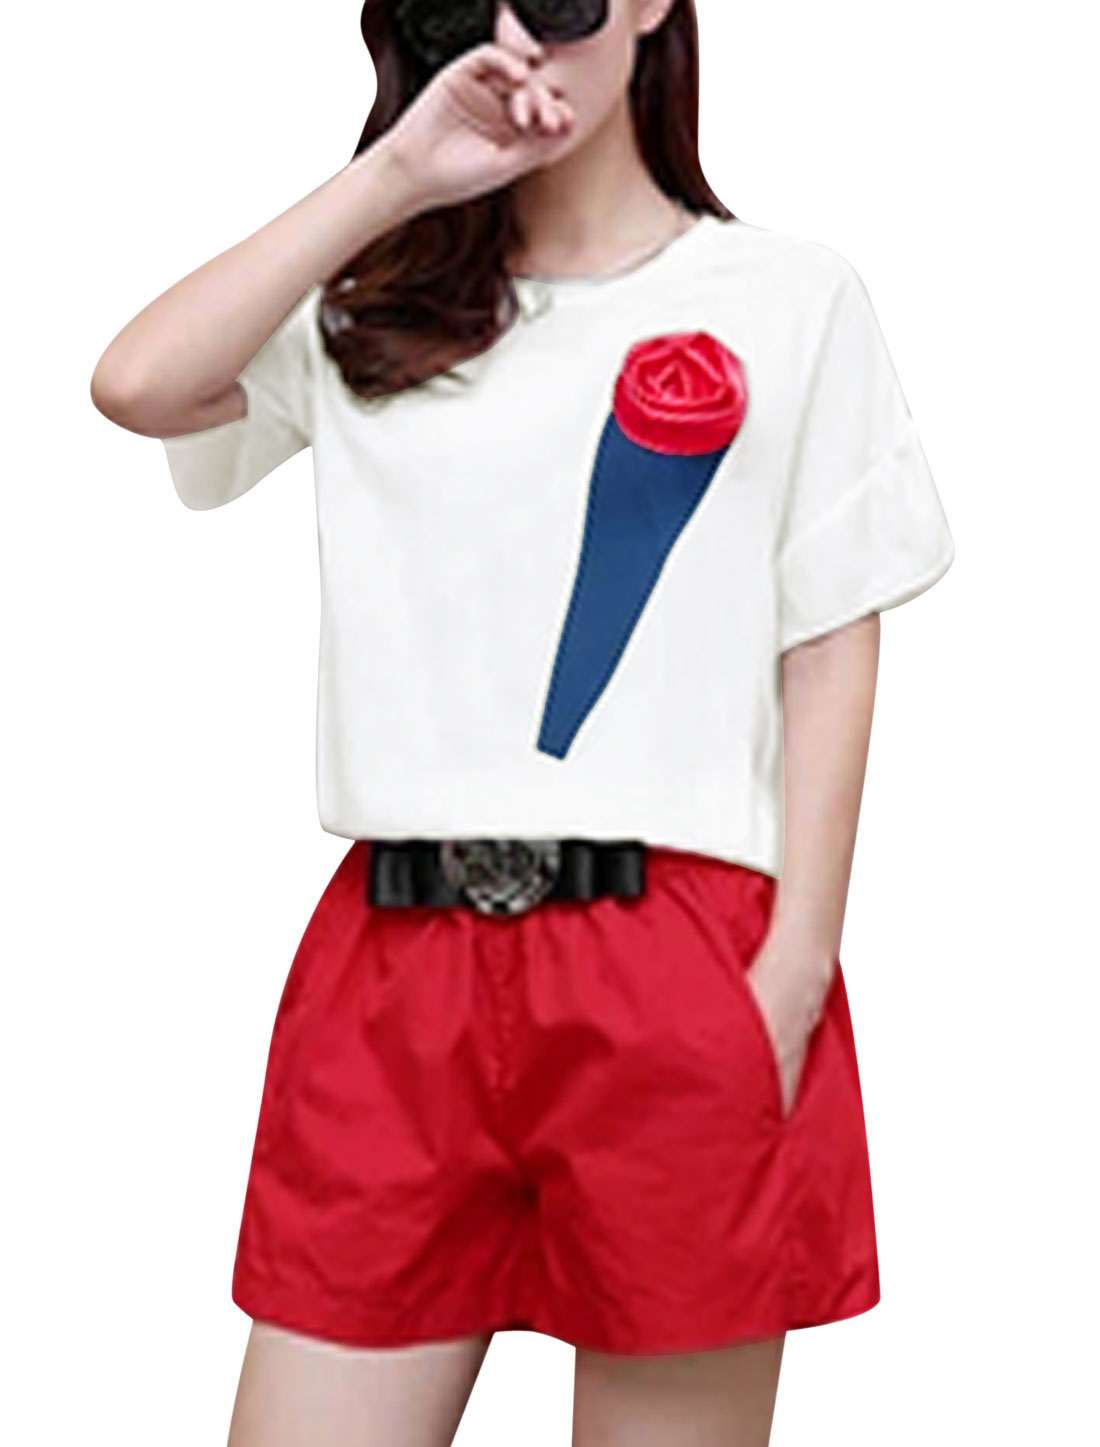 Lady Rose Decor Round Neck White Top w Bowknot Metal Decor Red Shorts S